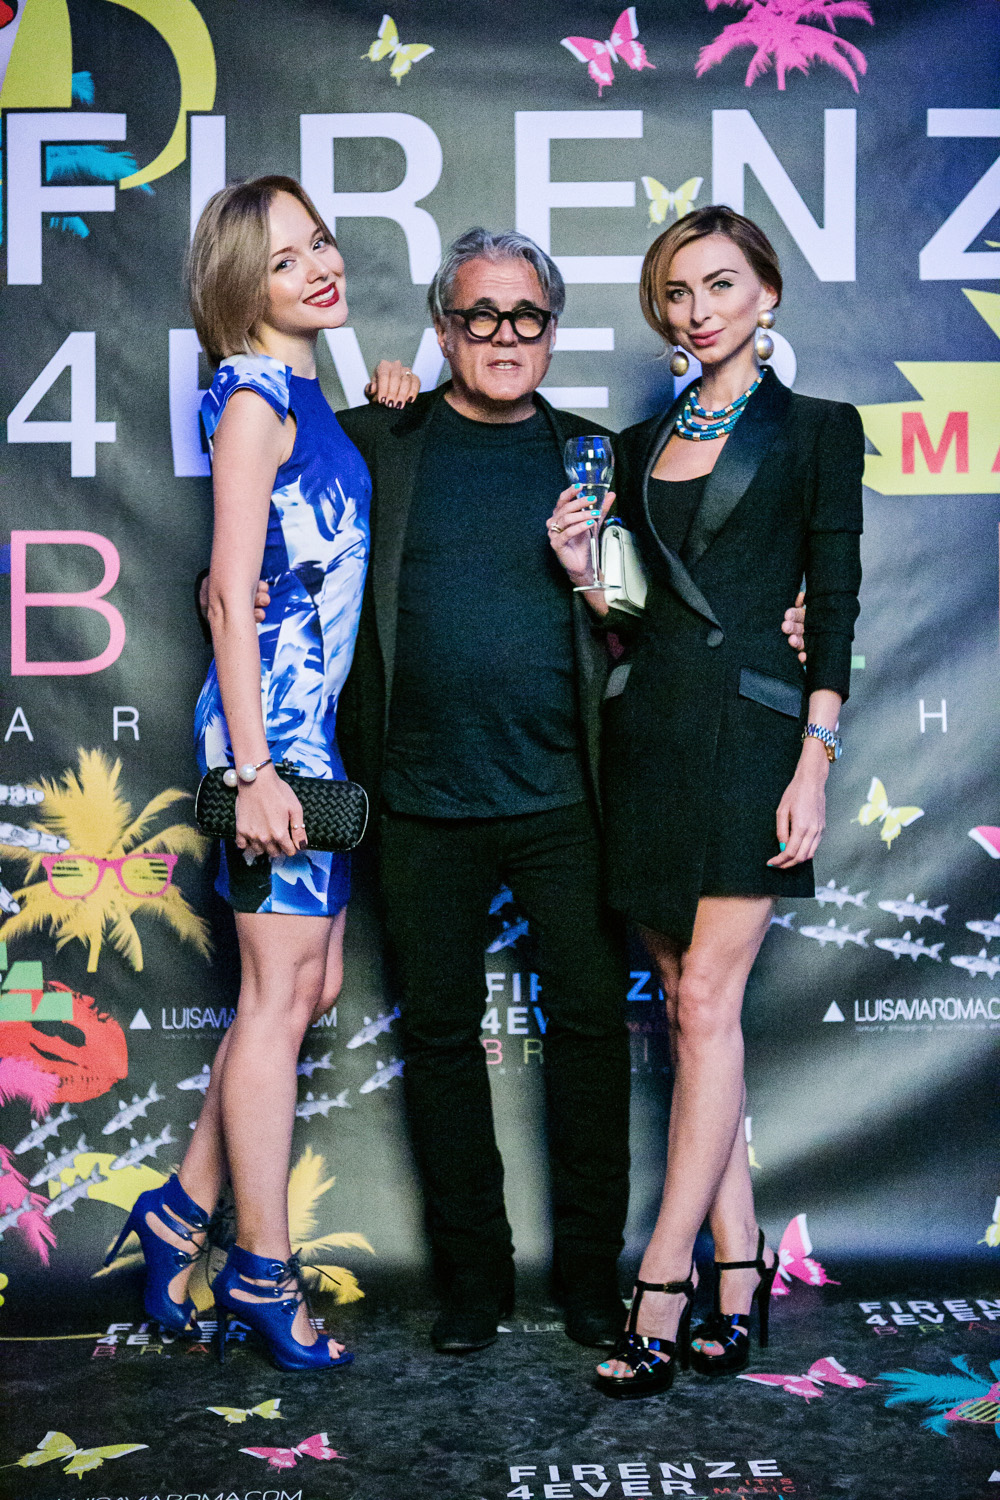 darya kamalova thecablook russian italian fashion blogger with eugenia applebum on firenze4ever blue city party in florence firenze in a blue sheinside dress missguided heels sandals and bottega veneta knot black clutch_-9 copy